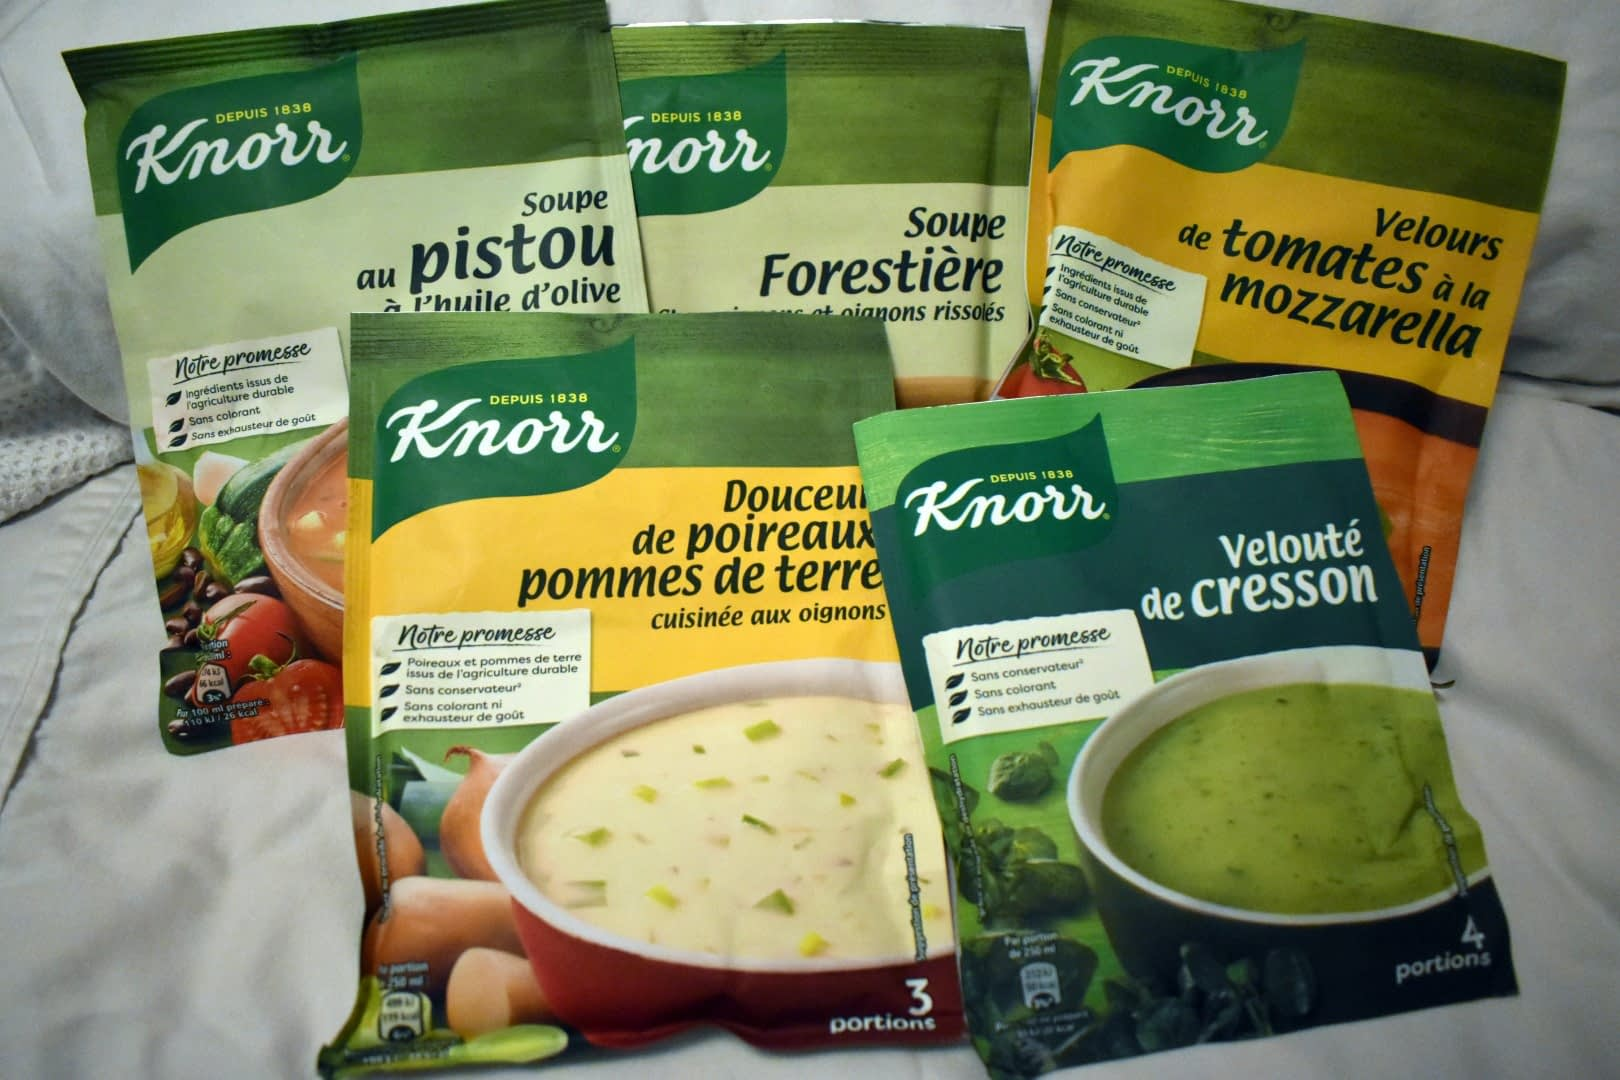 Instant soup (don't laugh, it's very comforting when it gets cold!)